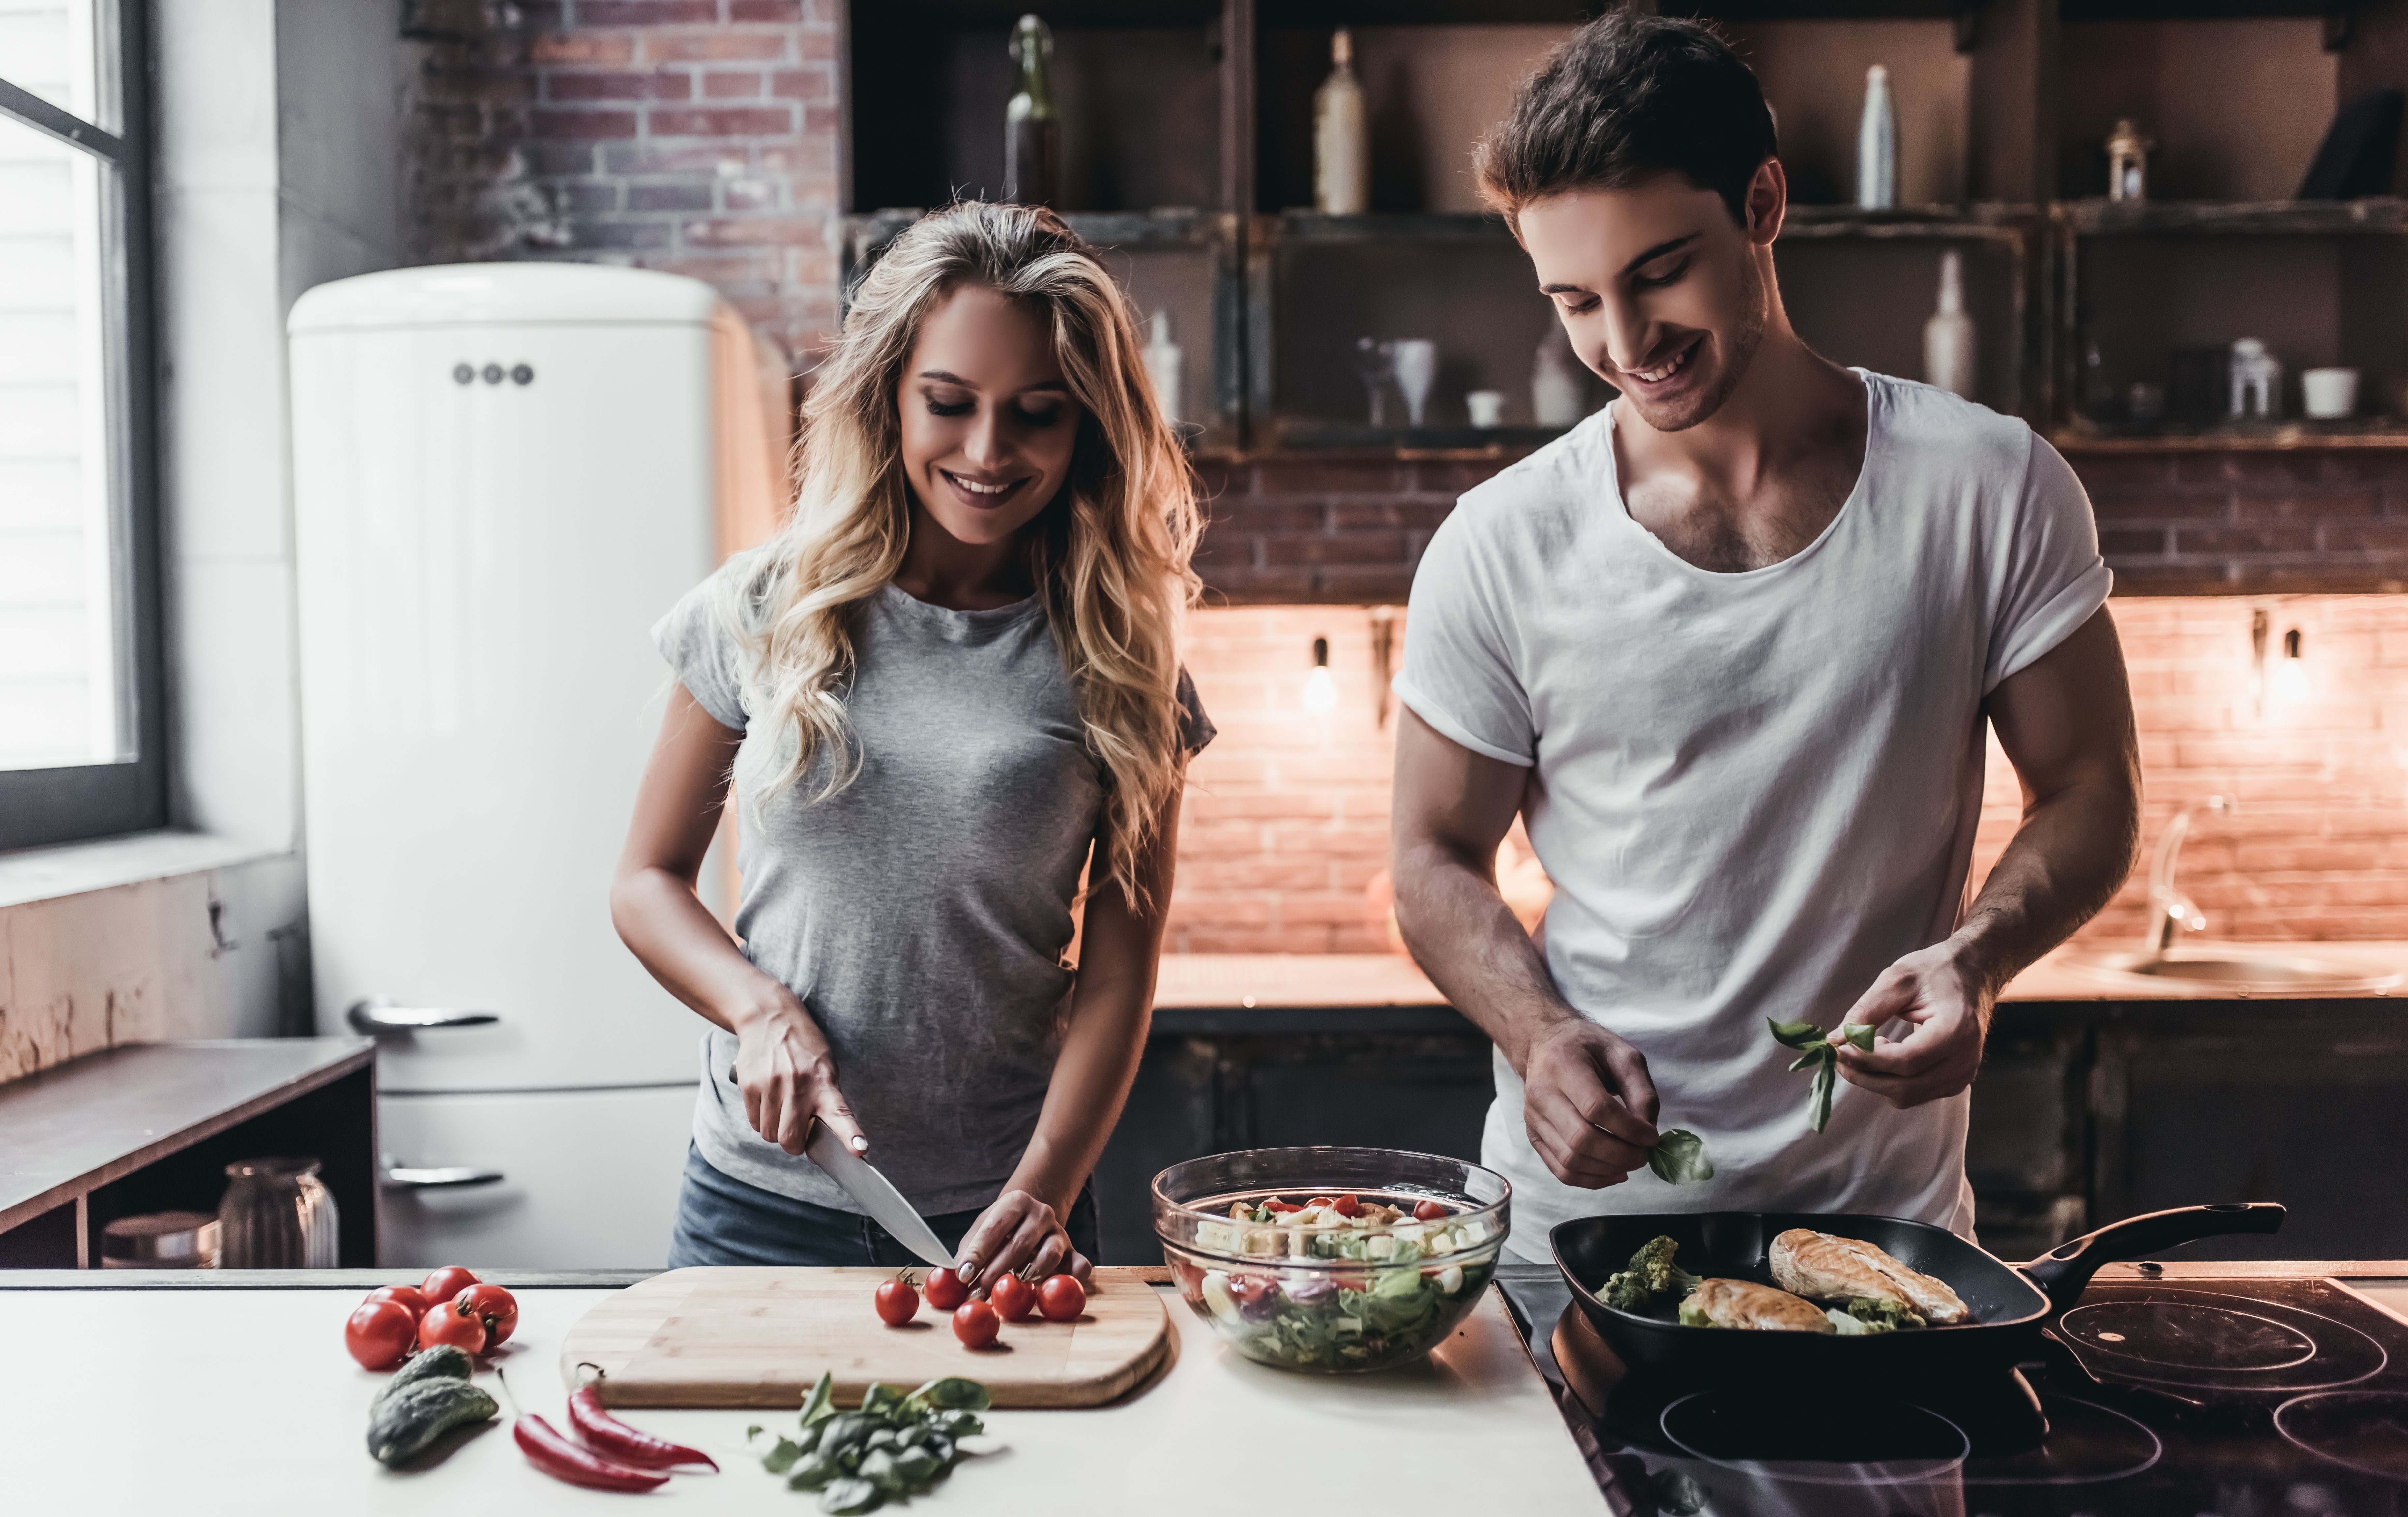 A couple happily cooking together. │ Source: Shutterstock